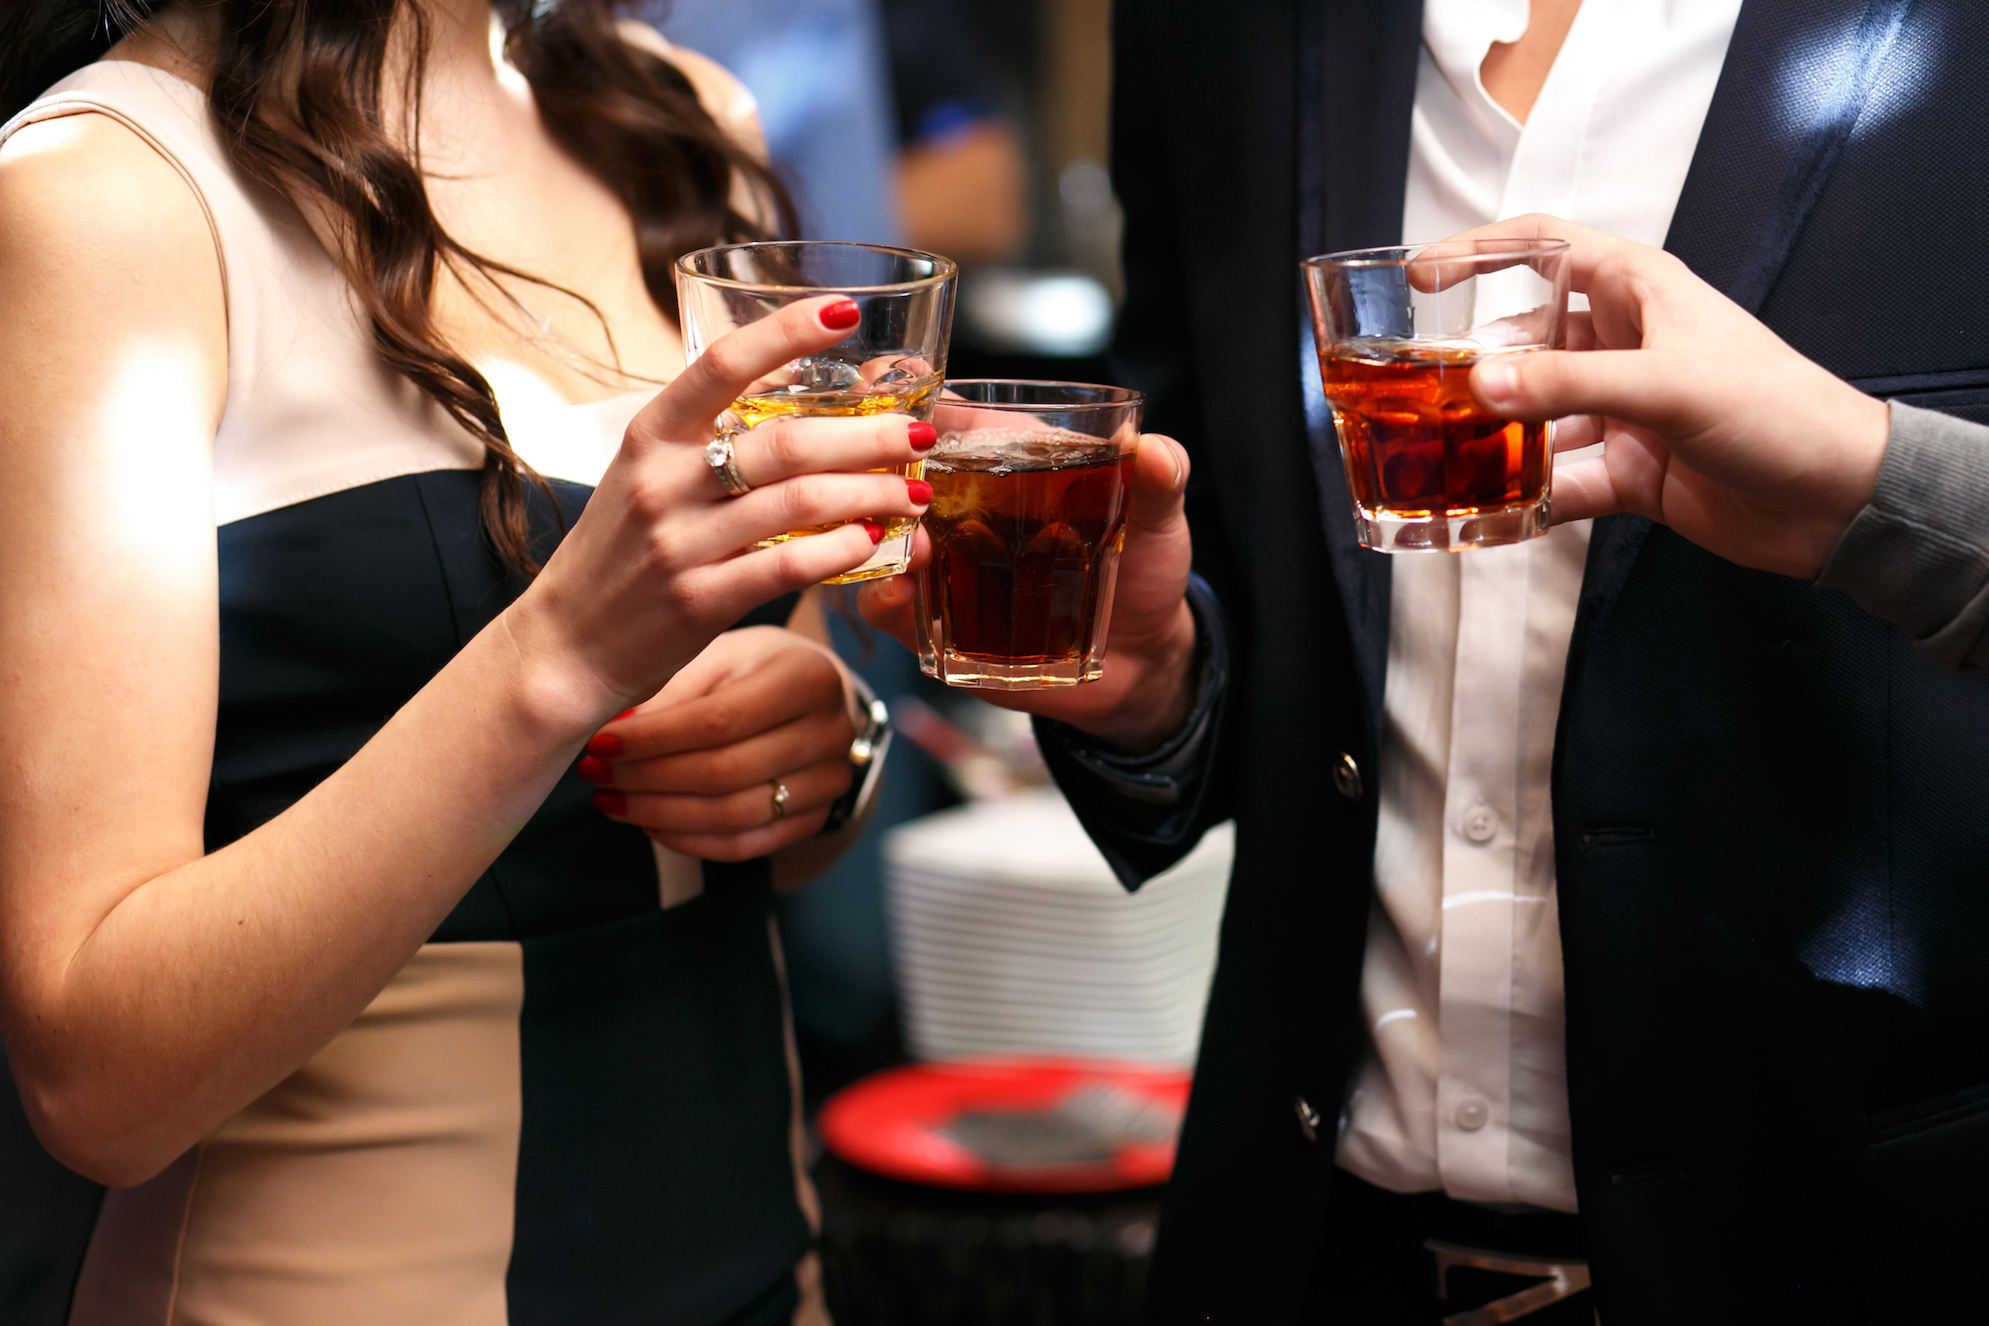 A new study found a link between alcohol drinking and fatal cardiovascular disease, but only among people in a lower socioeconomic position.